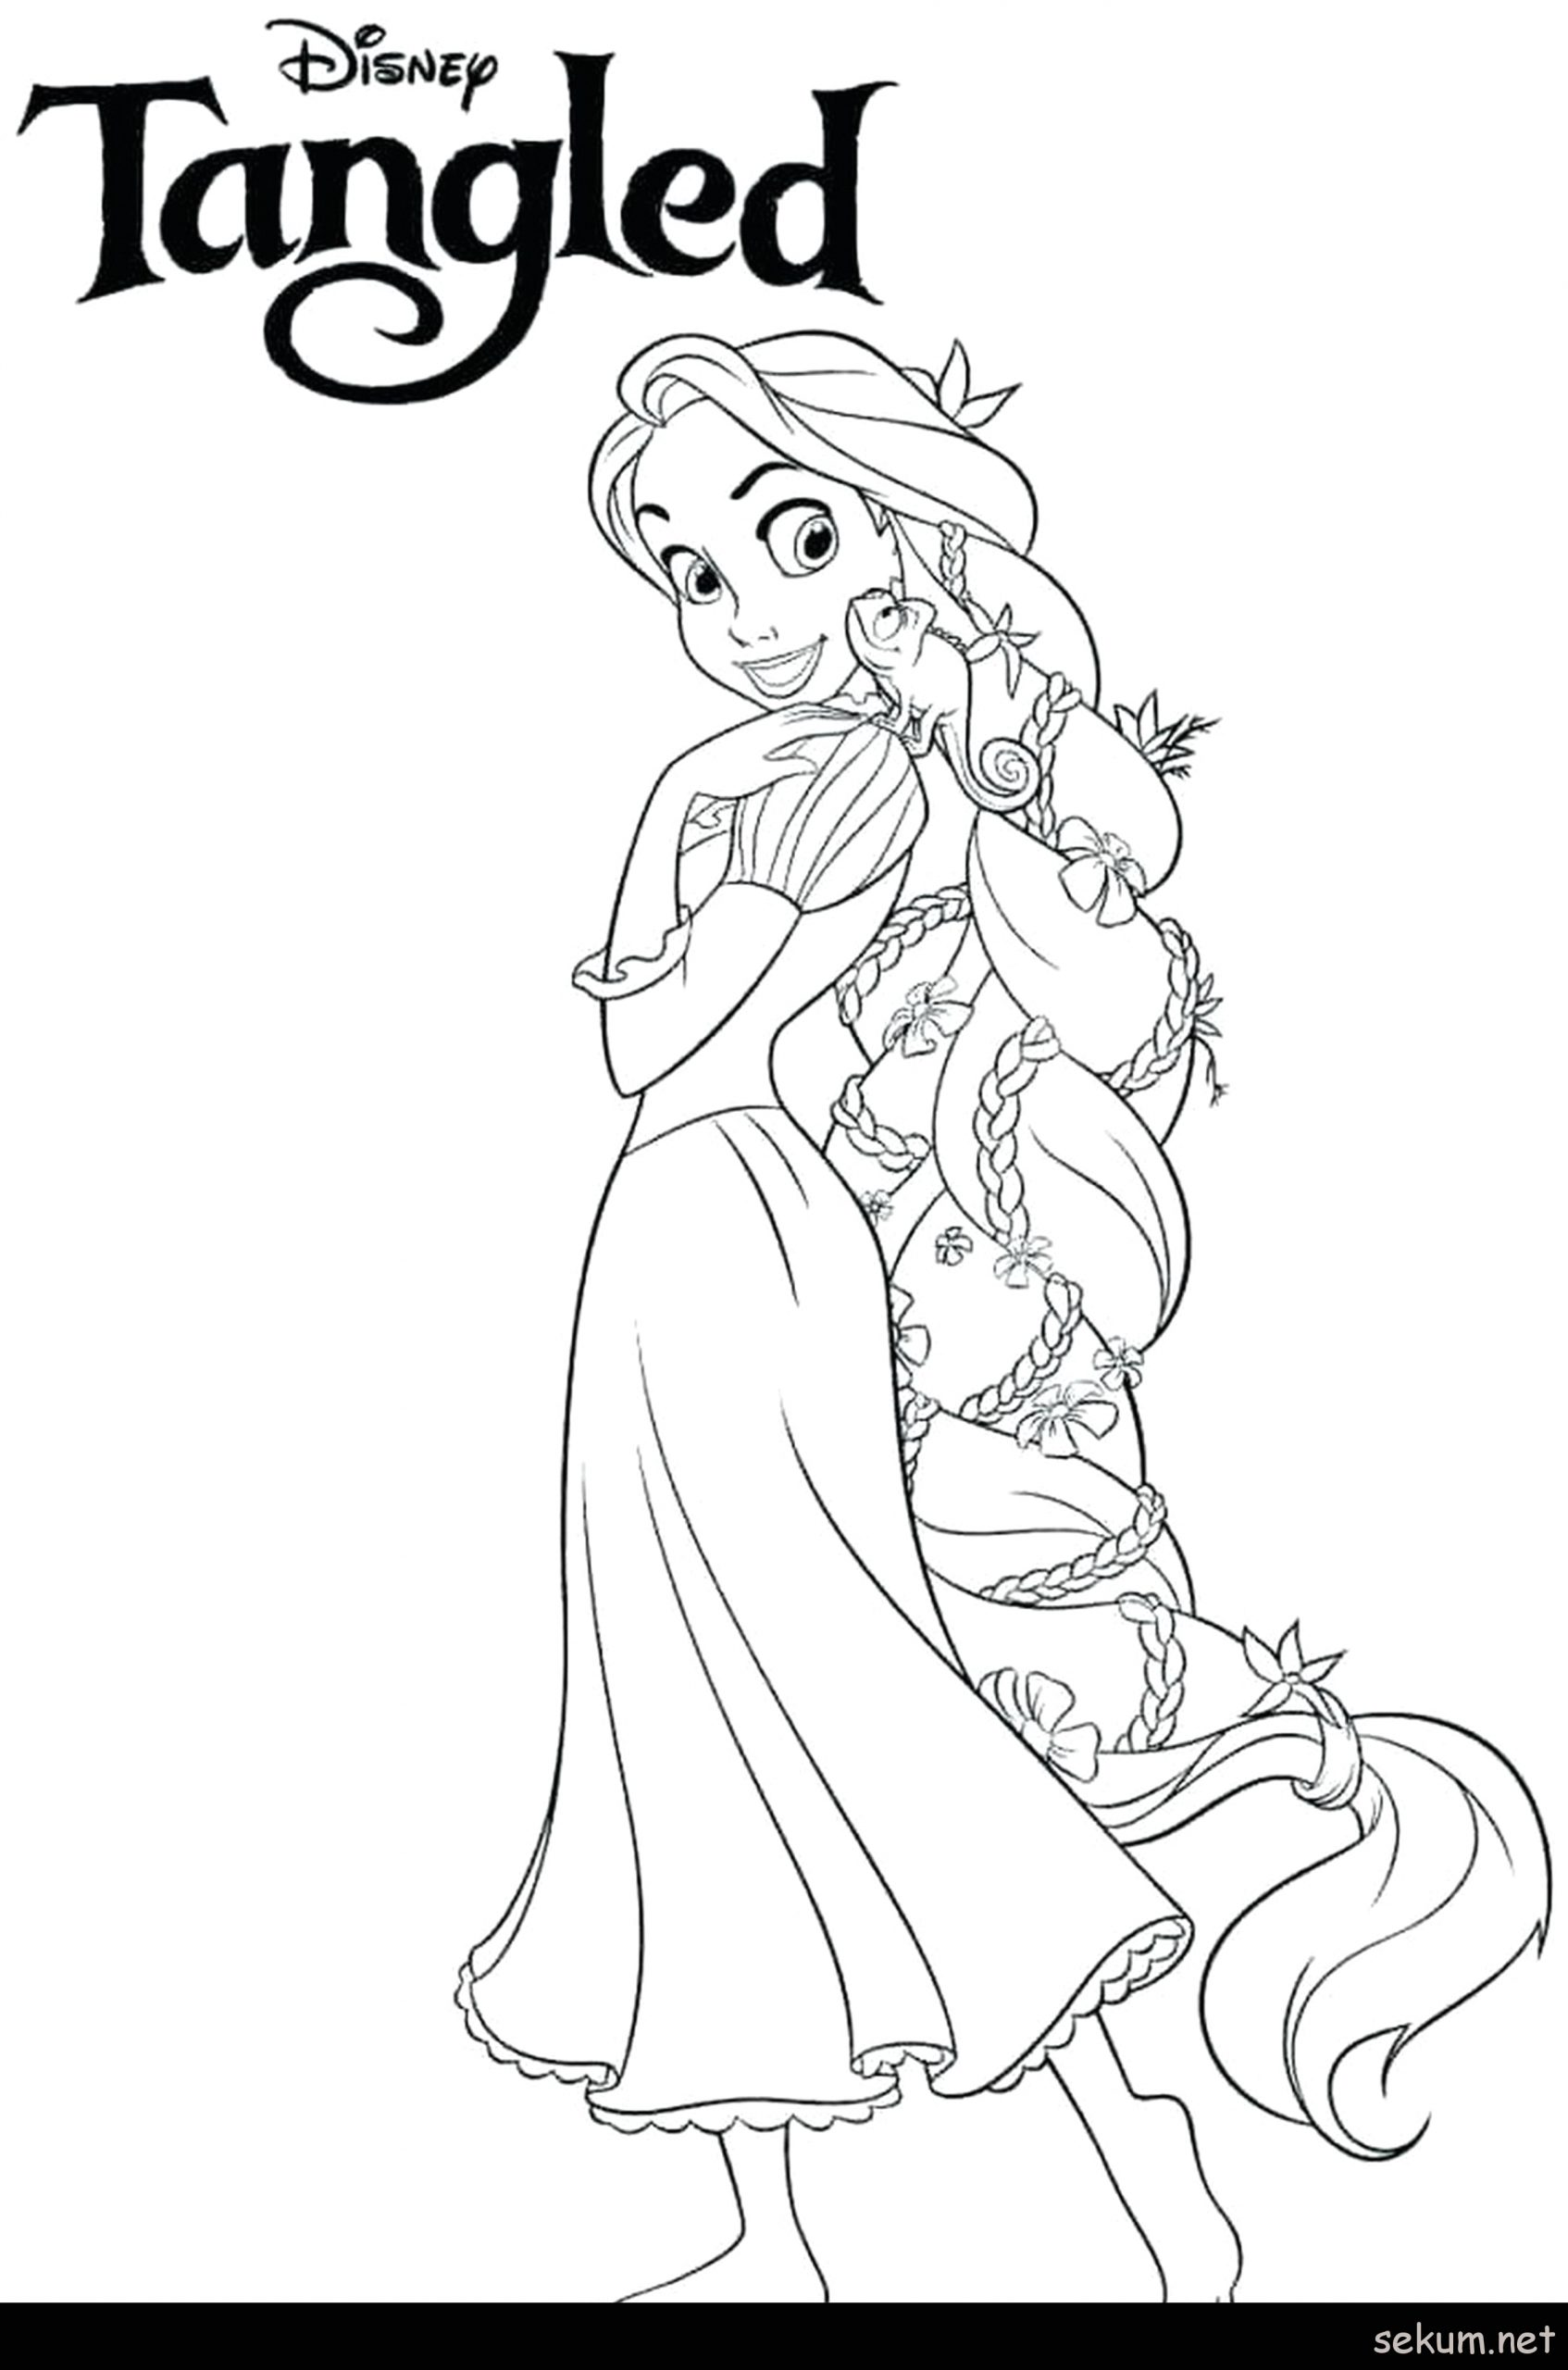 printable princess coloring pages all disney princesses coloring pages princess coloring pages games